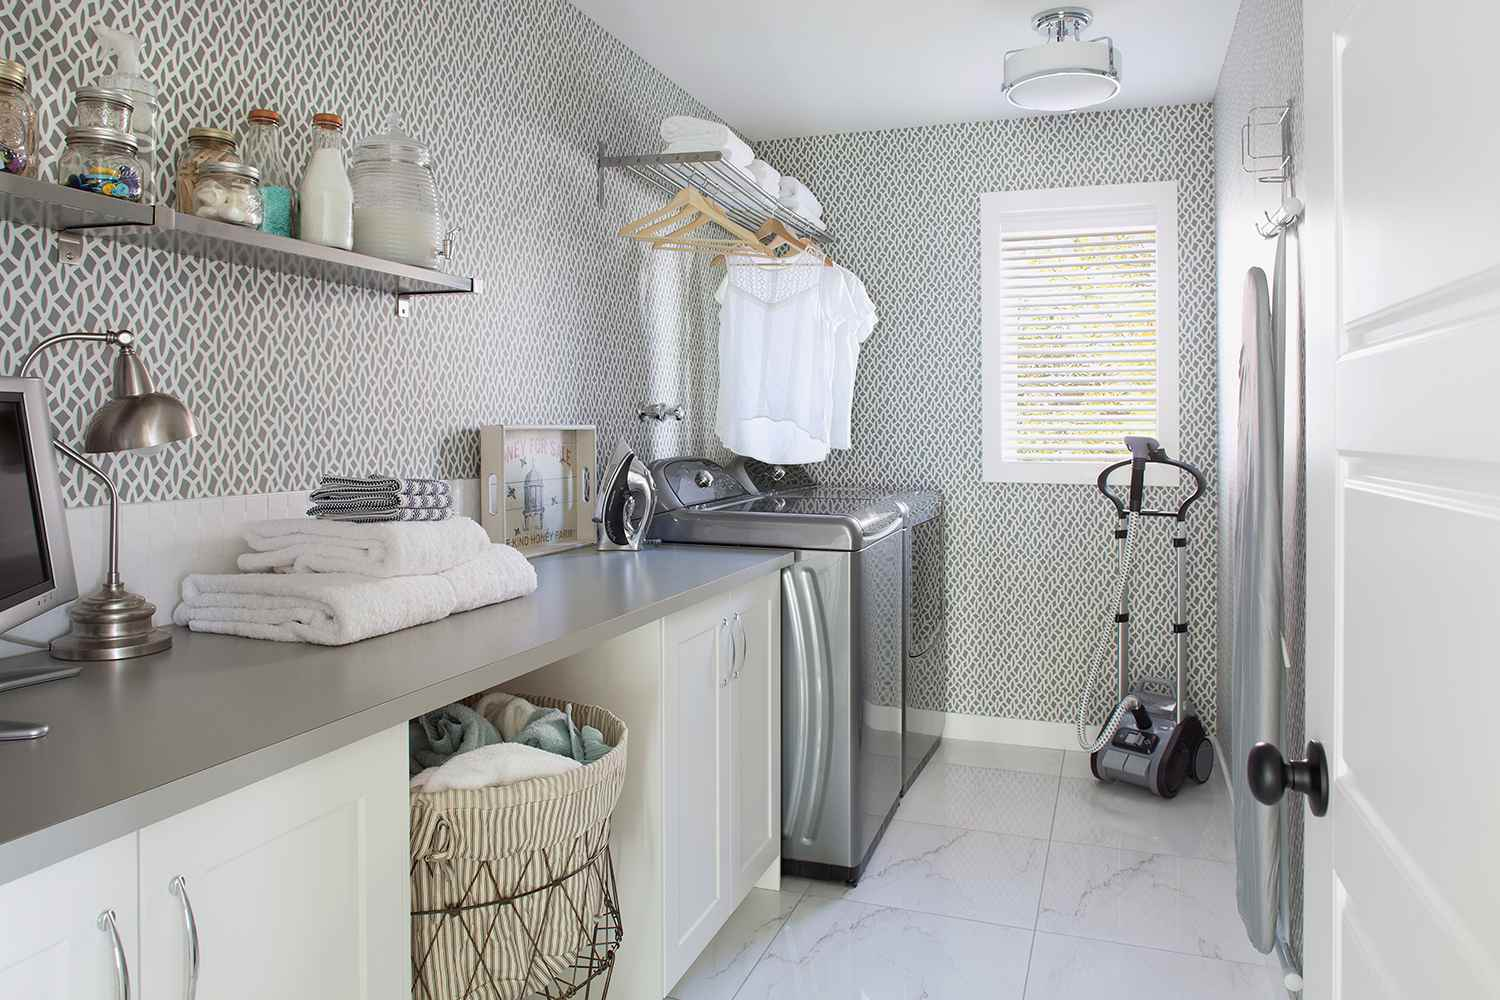 Interior of laundry room in a contemporary home with vinyl flooring.